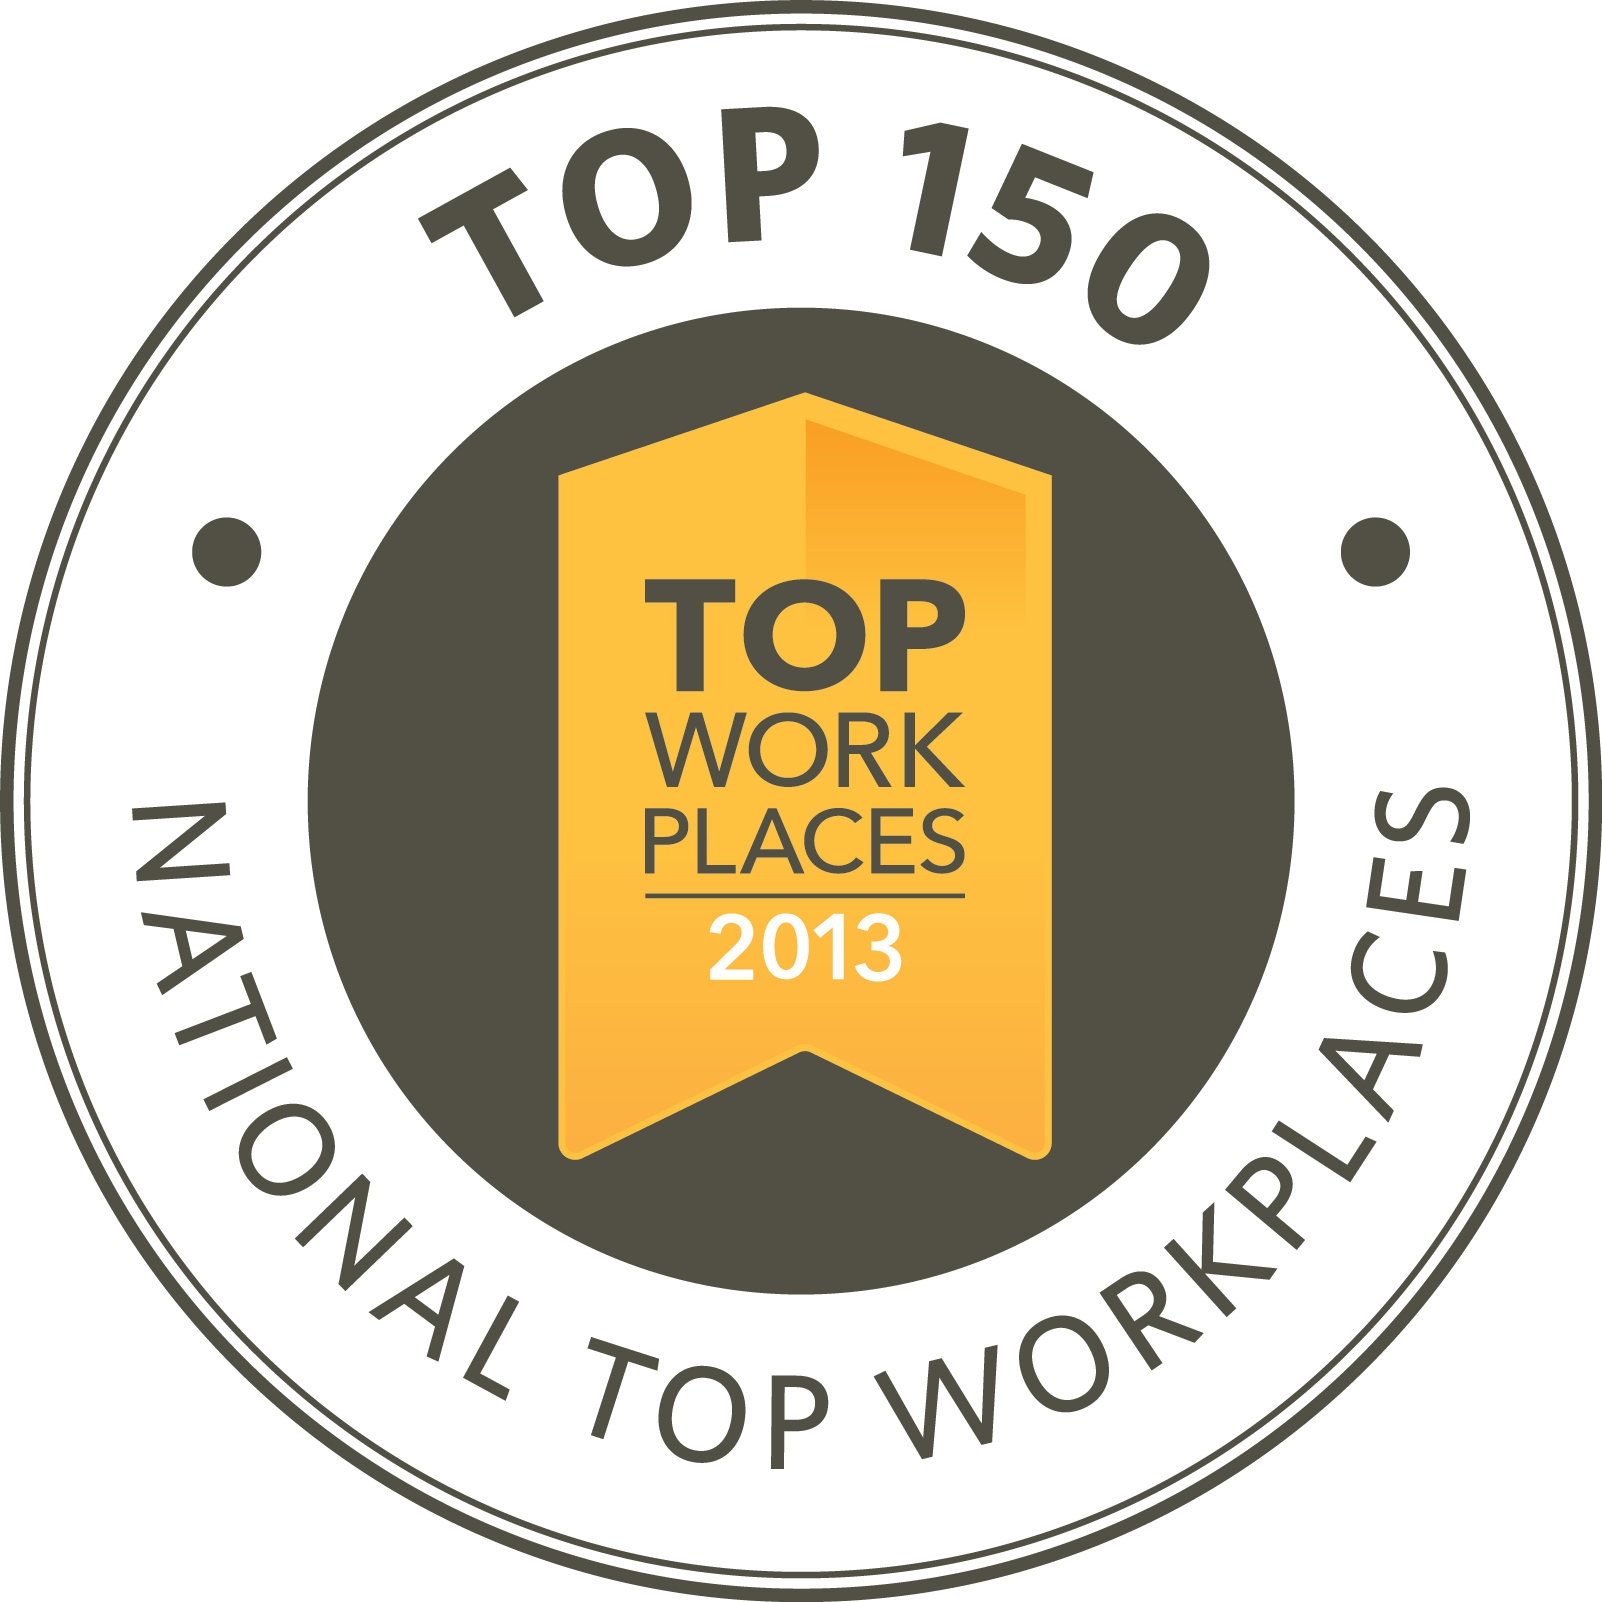 2013 Top Work Places National